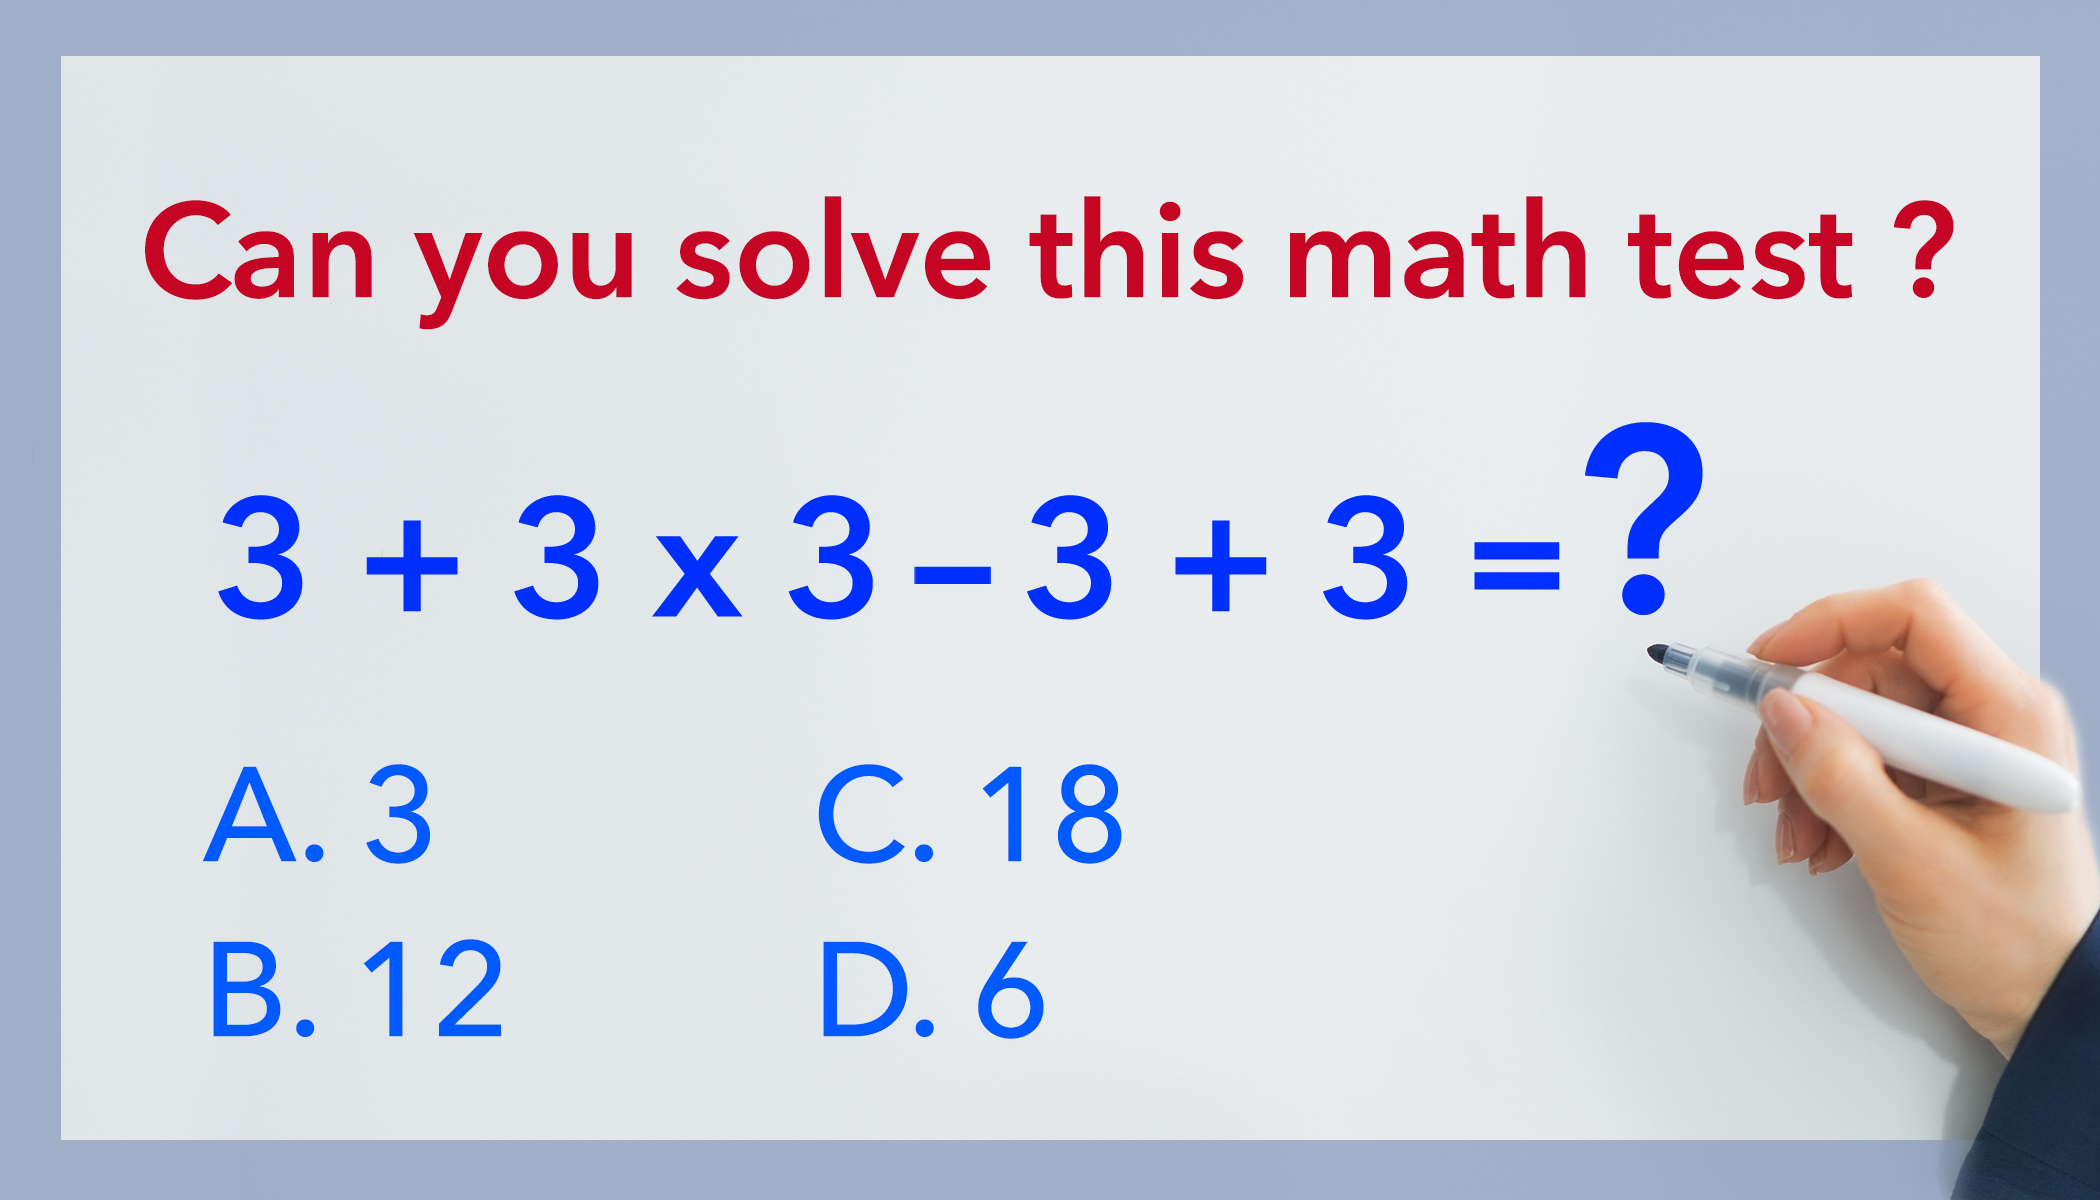 Are You Smart Enough to Solve This Math Problem? Most People Get It Wrong!